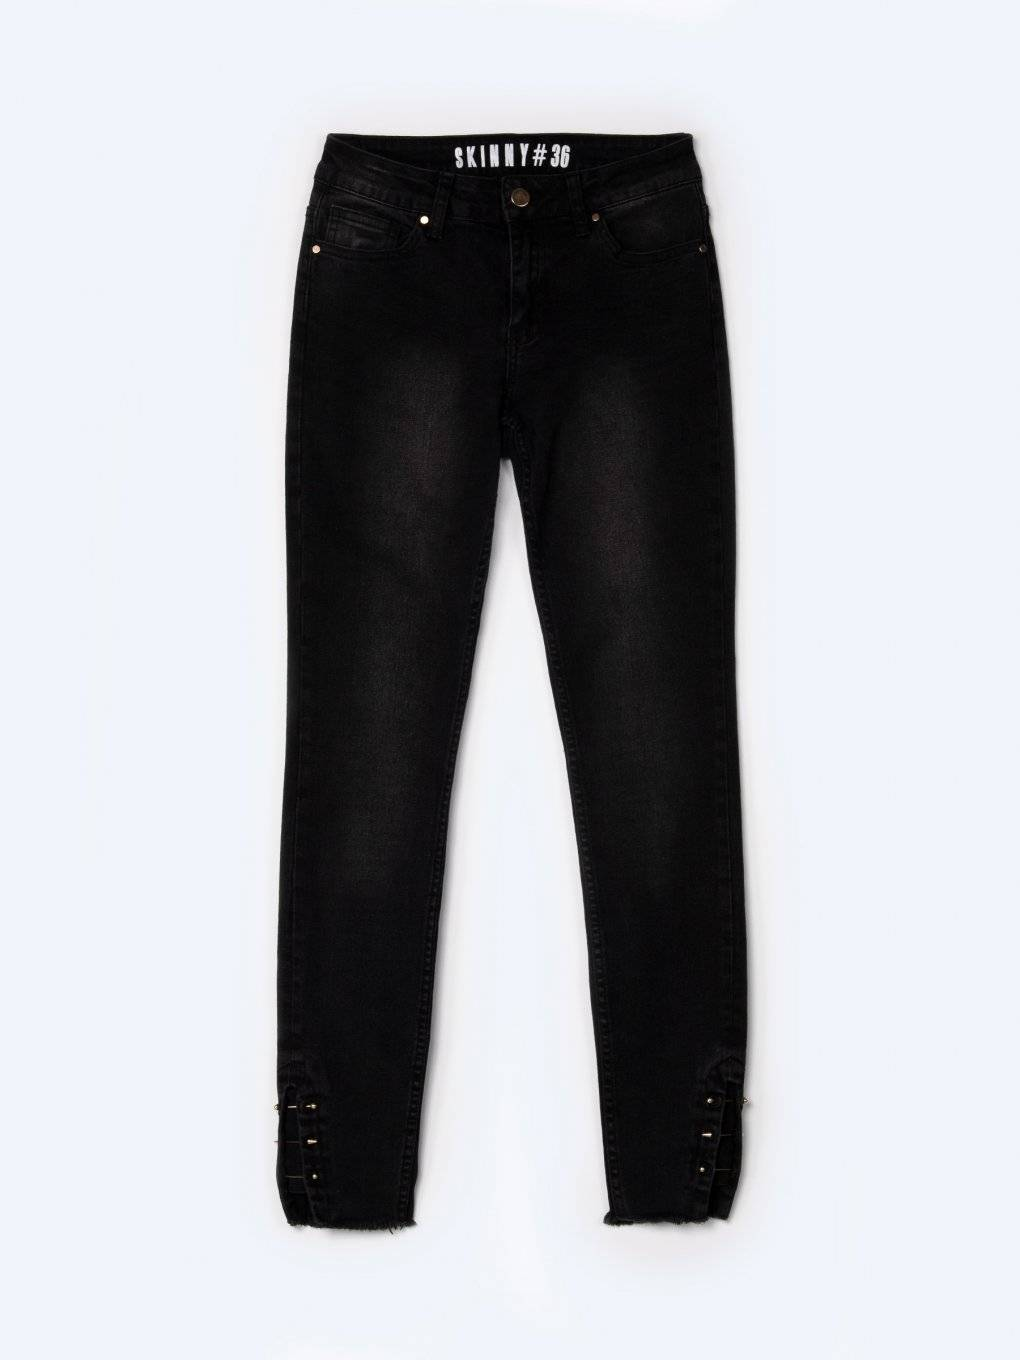 Skinny jeans with metal decoration on hem